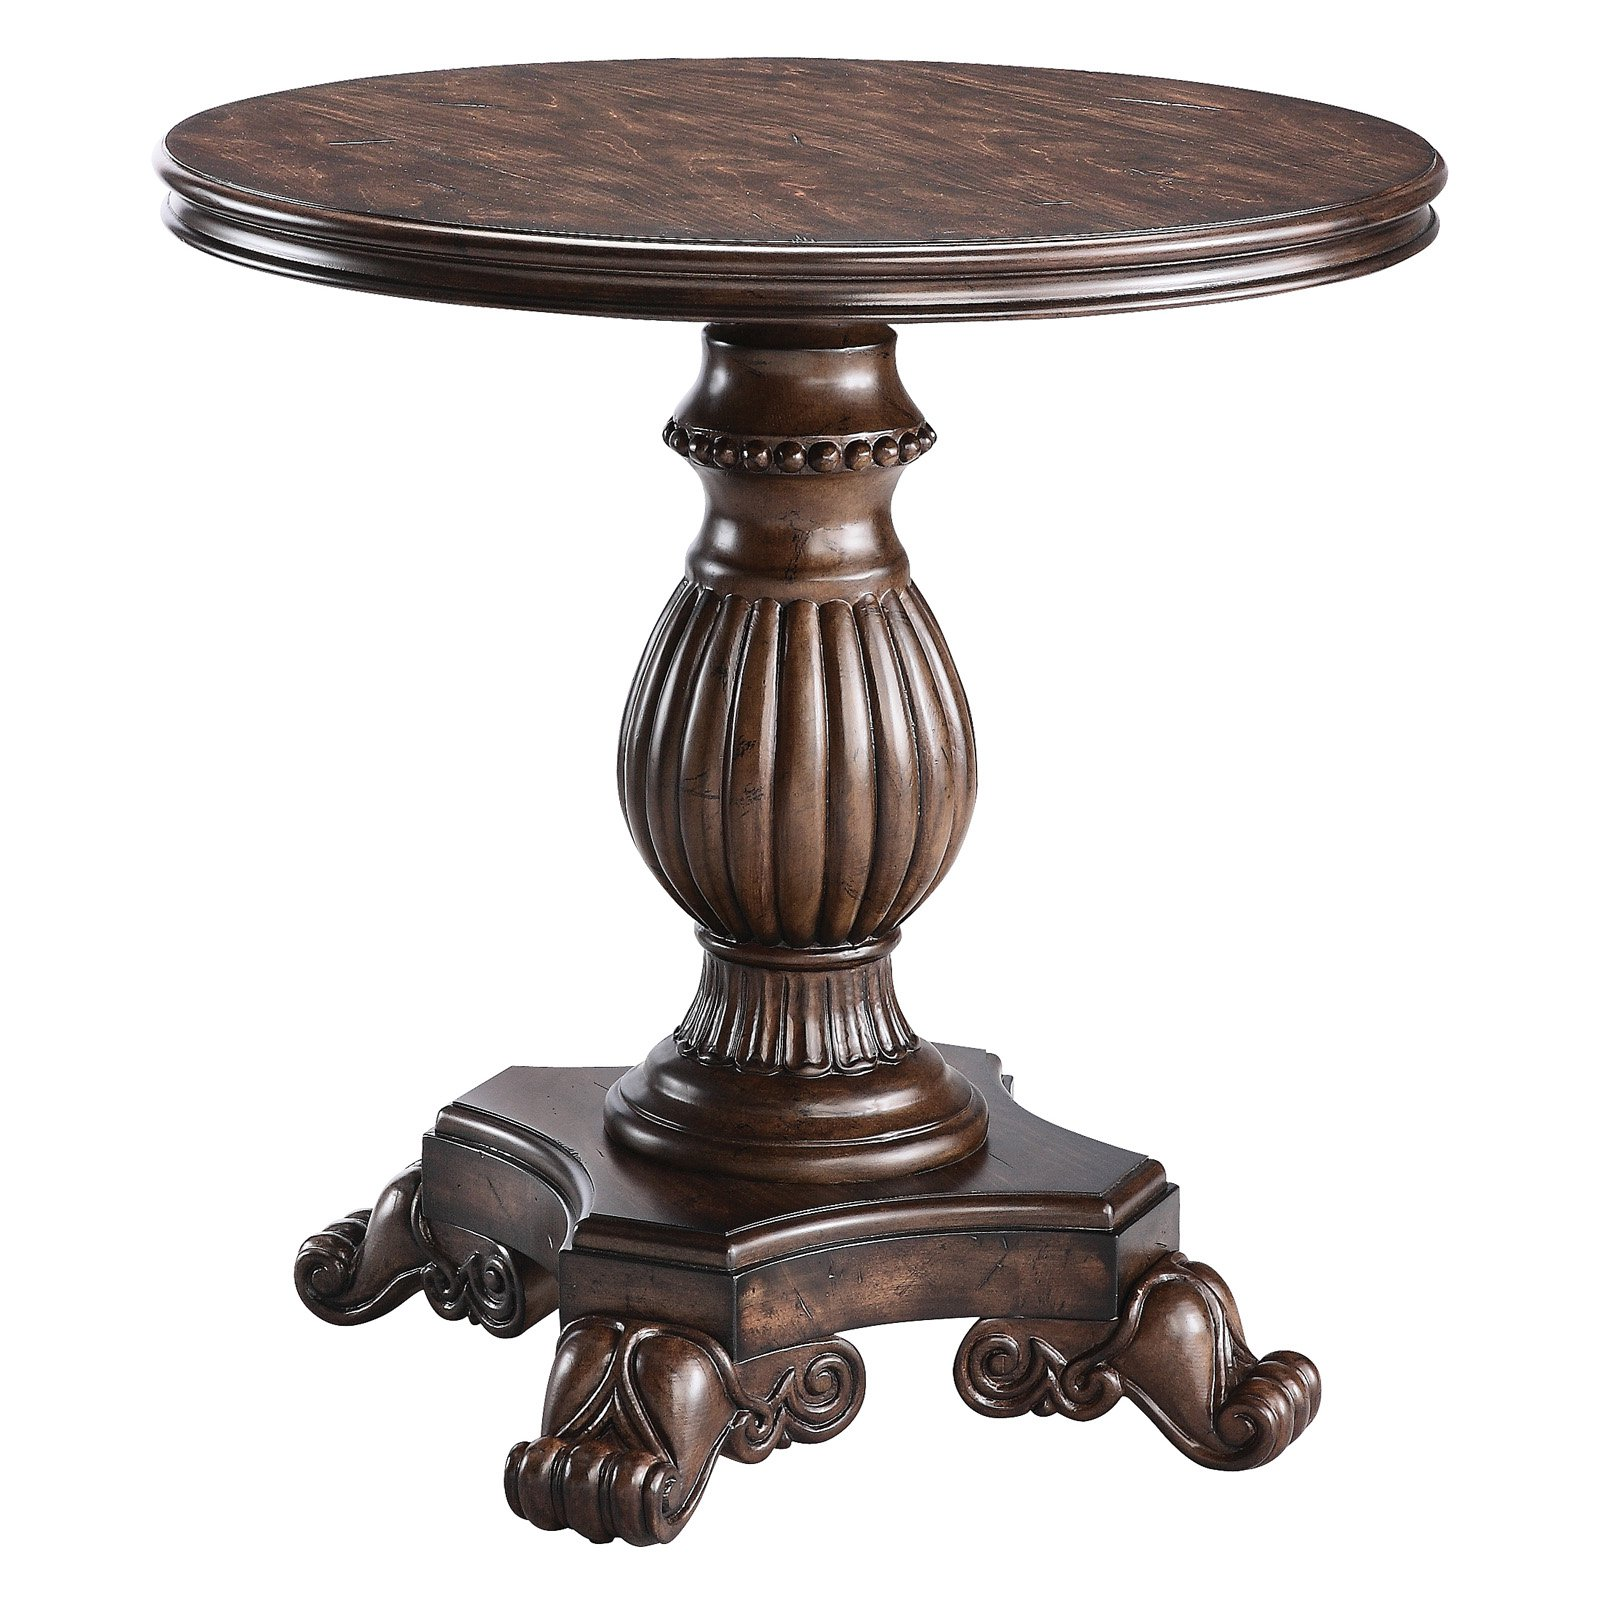 stein world round pedestal reclaimed table dark end half moon accent baroque small farmhouse dining set homemade coffee designs porch outdoor wicker with storage breakfast chairs